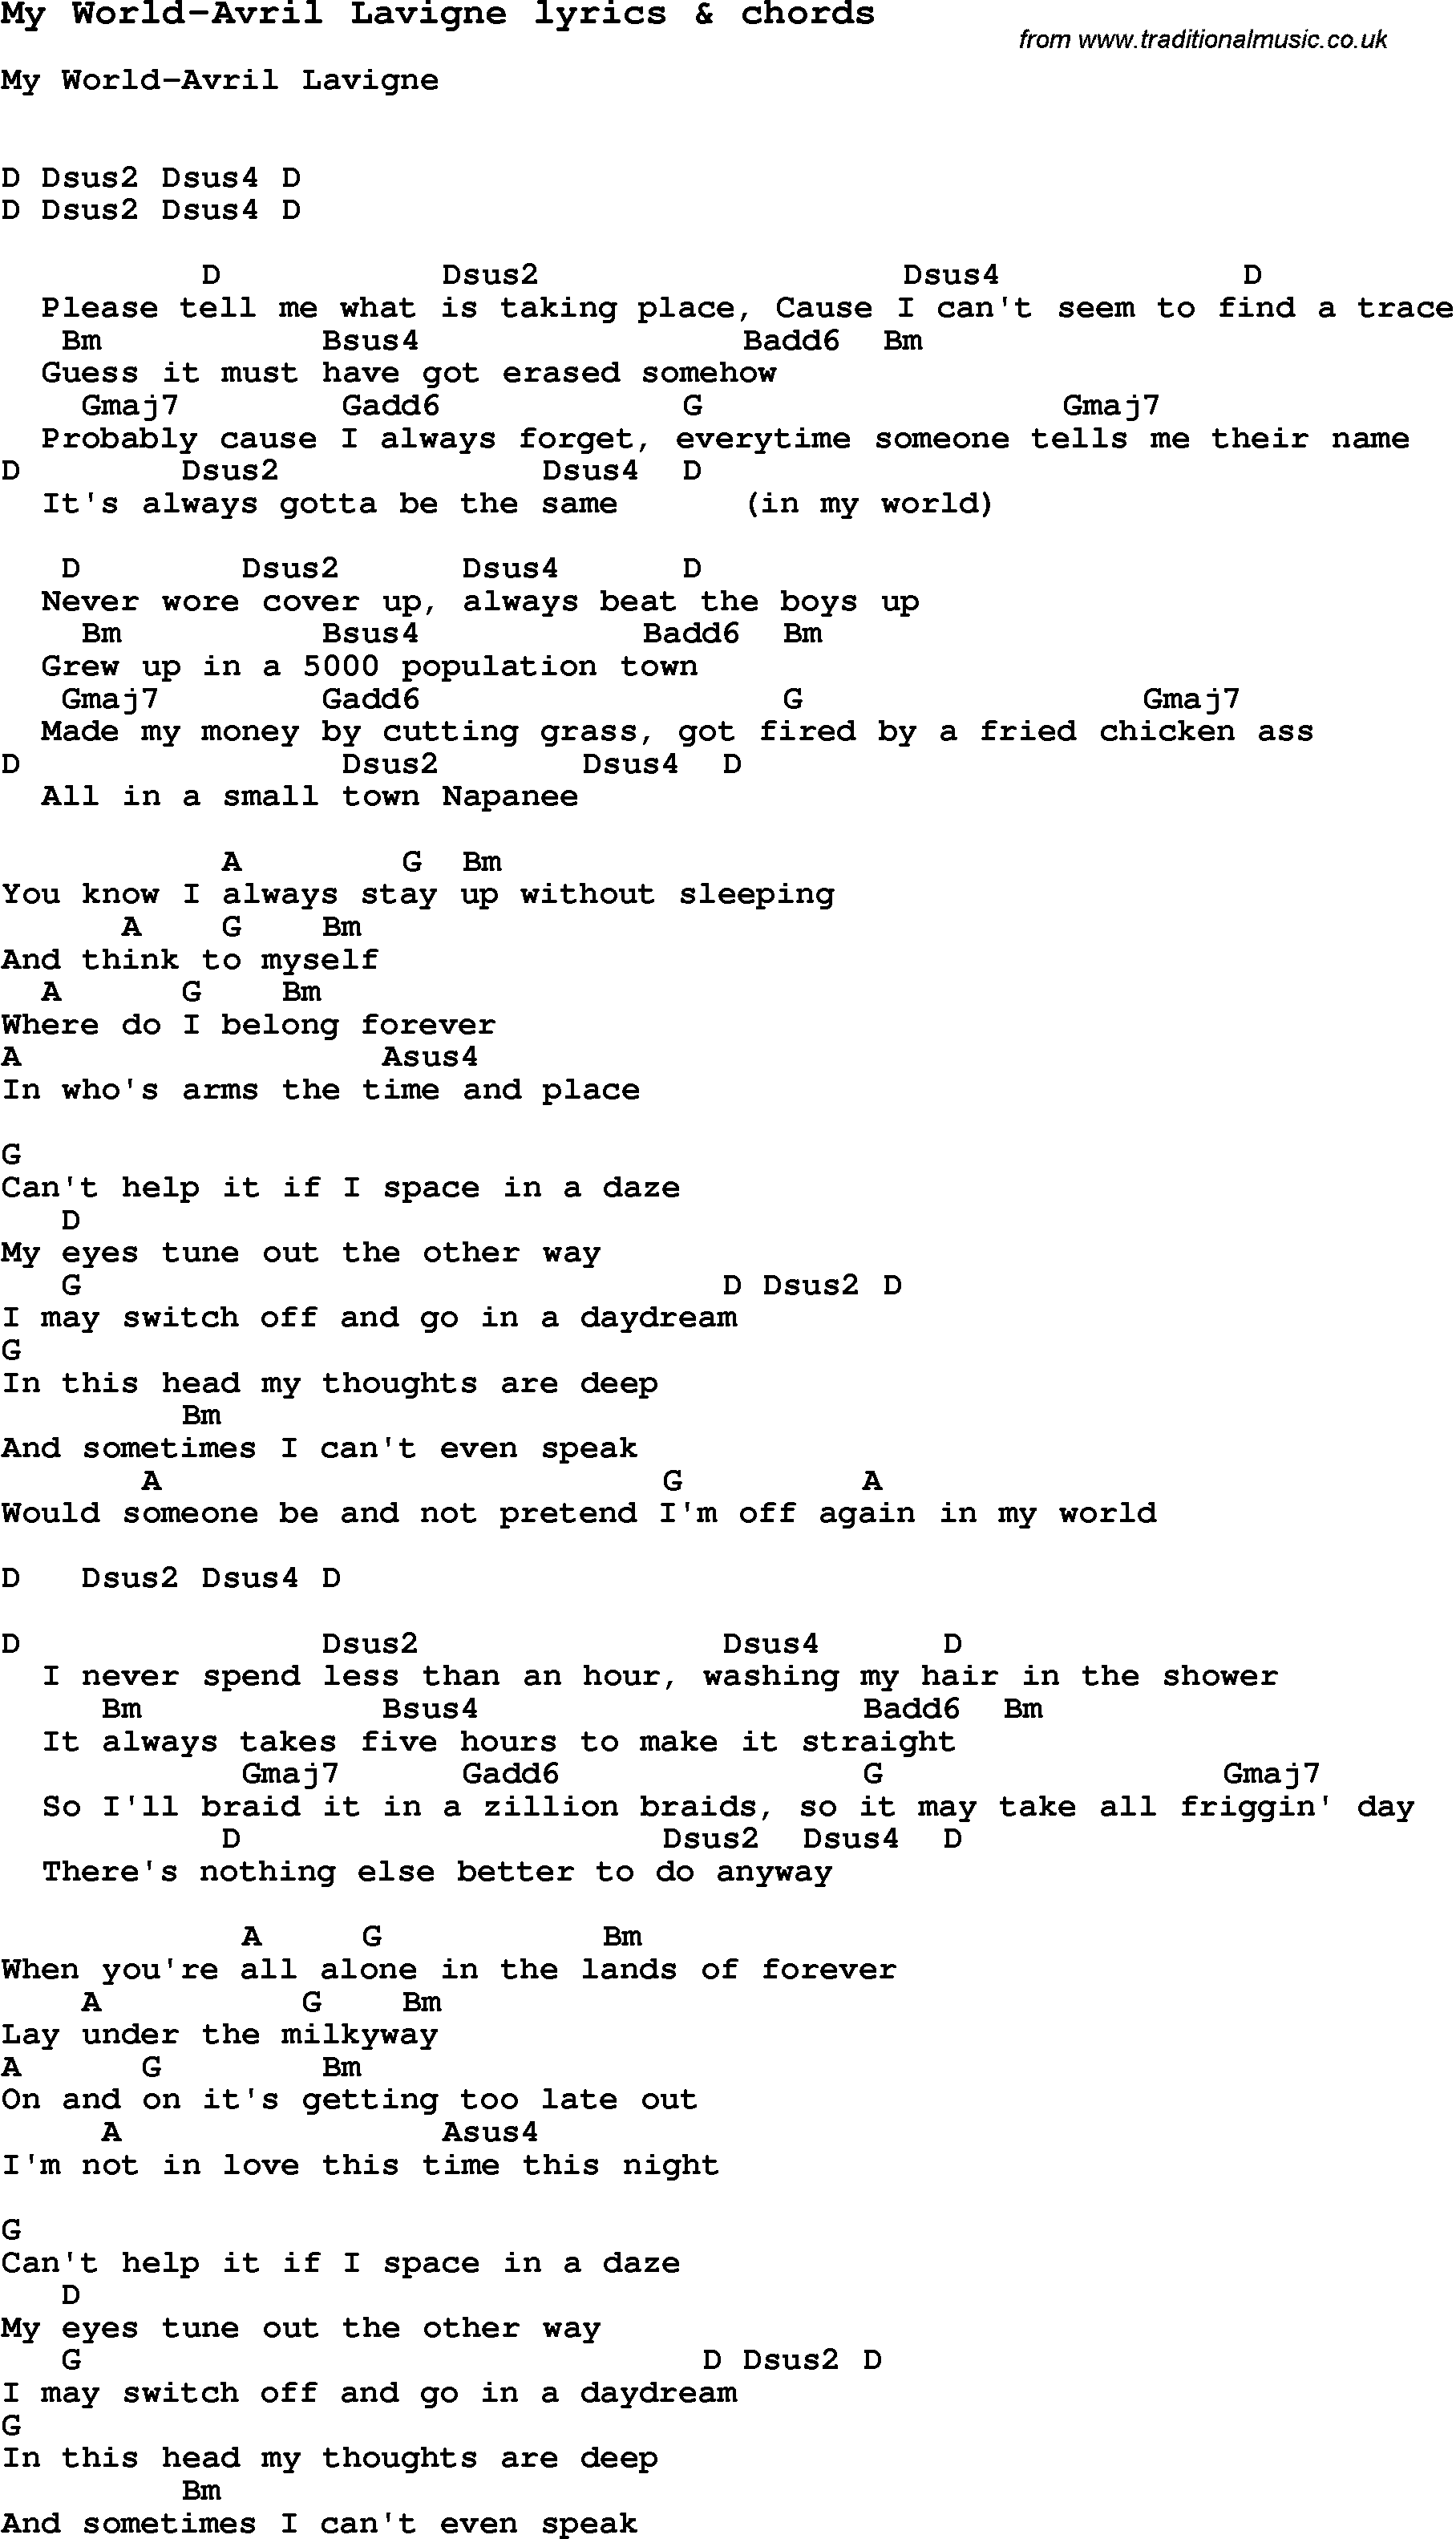 Love song lyrics formy world avril lavigne with chords love song lyrics for my world avril lavigne with chords for ukulele guitar hexwebz Choice Image